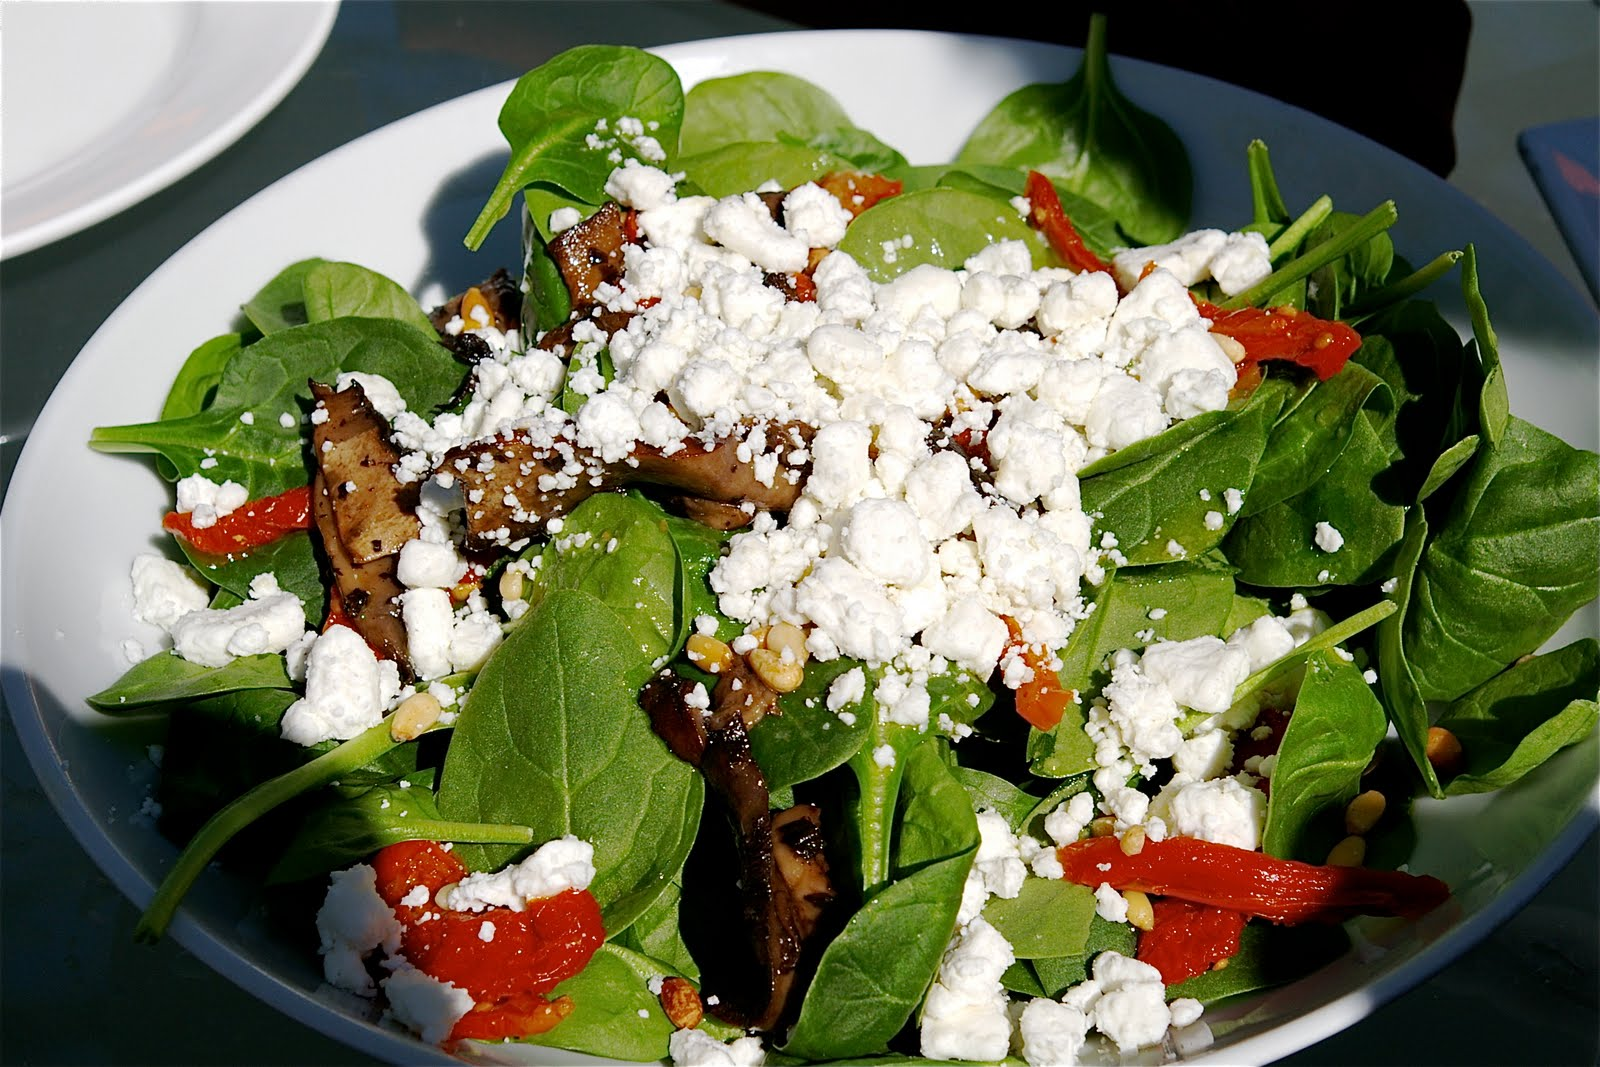 Spinach Salad with Sun-dried tomatoes, Mushrooms and Goat cheese